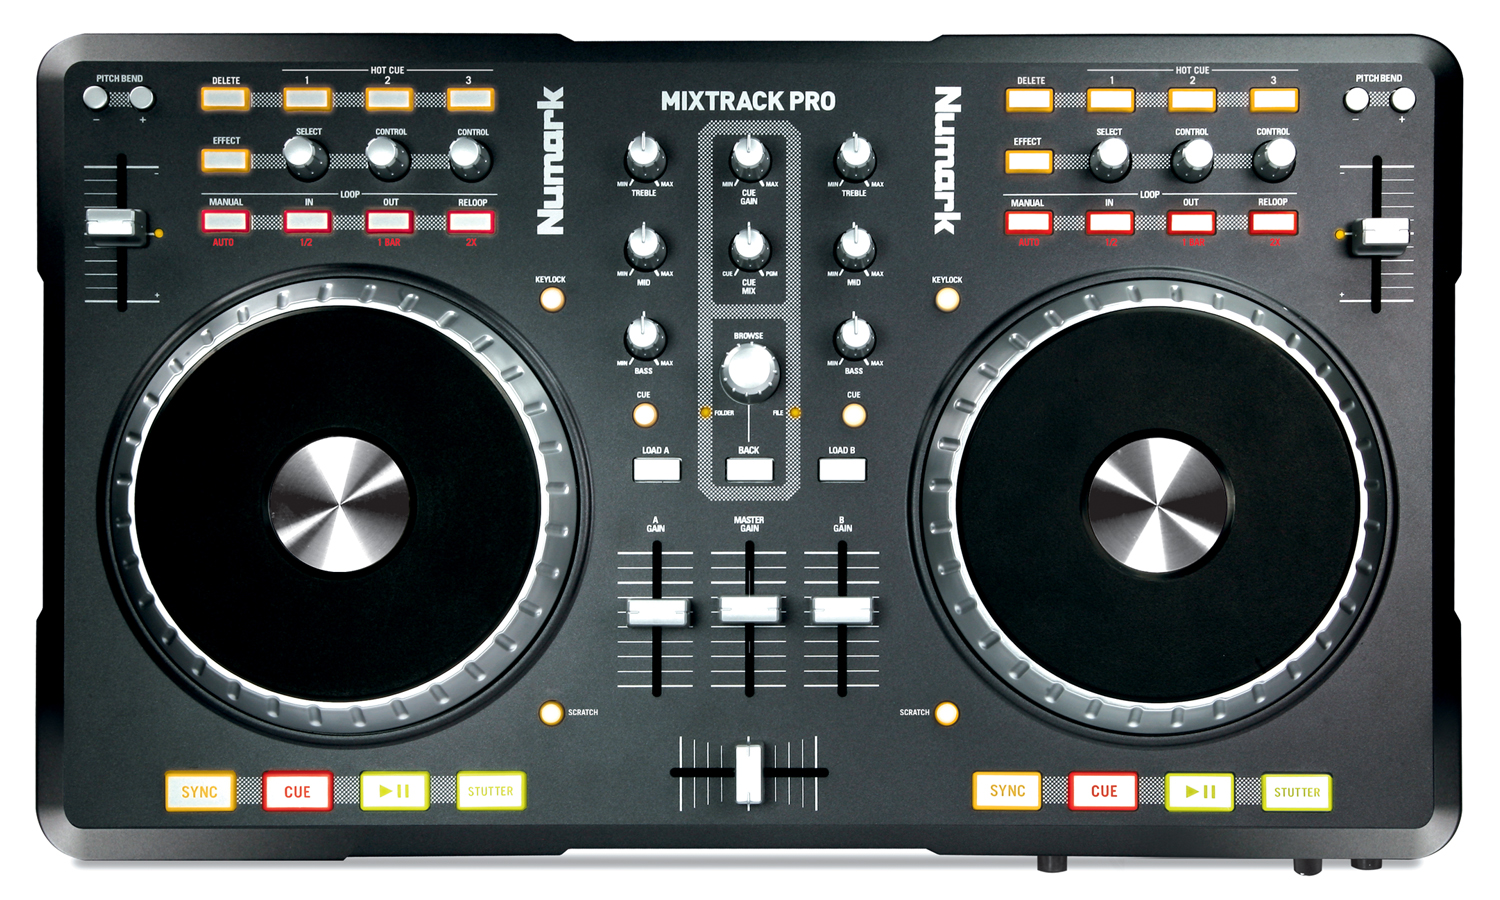 The Mixtrack Pro 2: Comes with Virtual DJ LE in most of the world, but you can use it with Traktor too. Here's how...